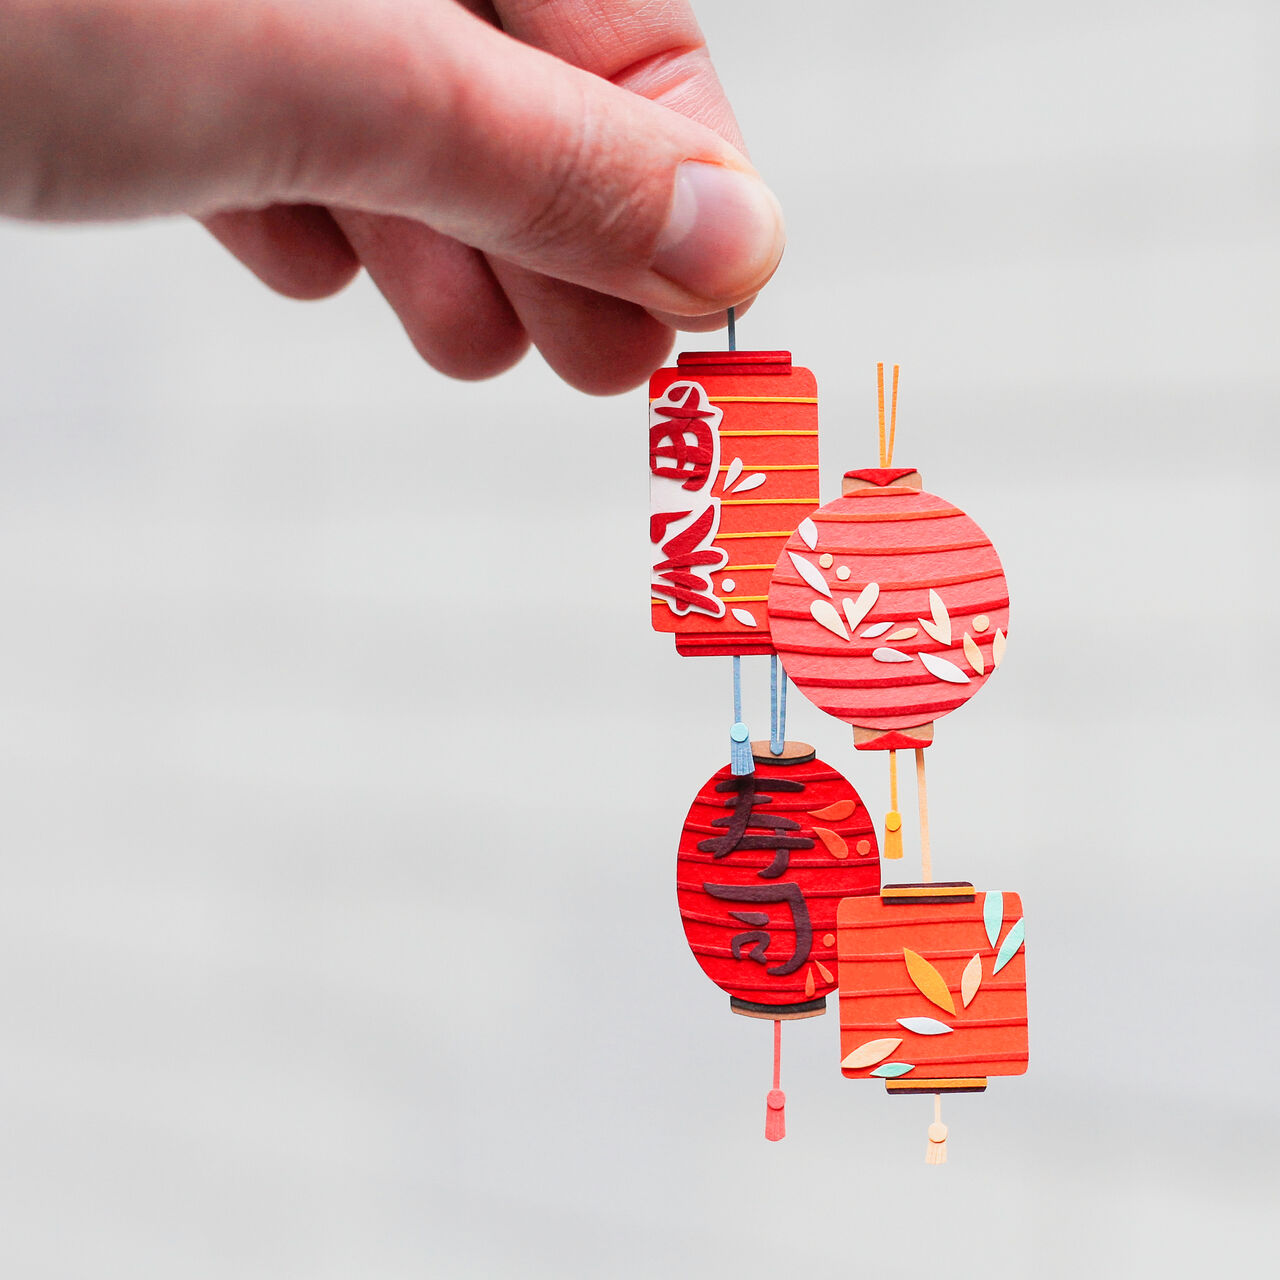 Photo of a hand holding tiny paper lanterns made out of intricate paper cuttings.